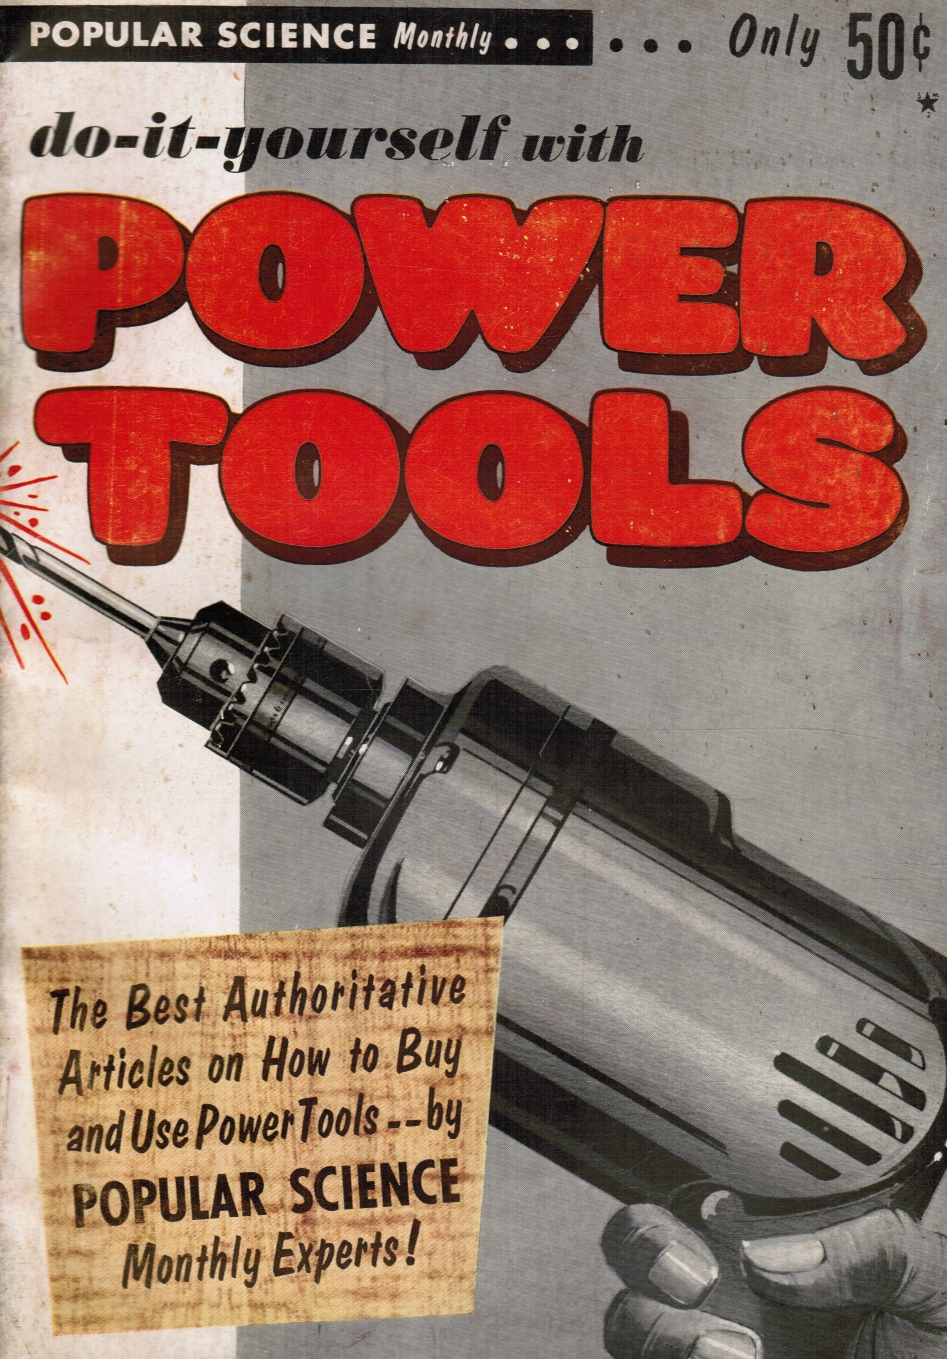 Image for Do-It-Yourself with Power Tools (Popular Science Monthly)